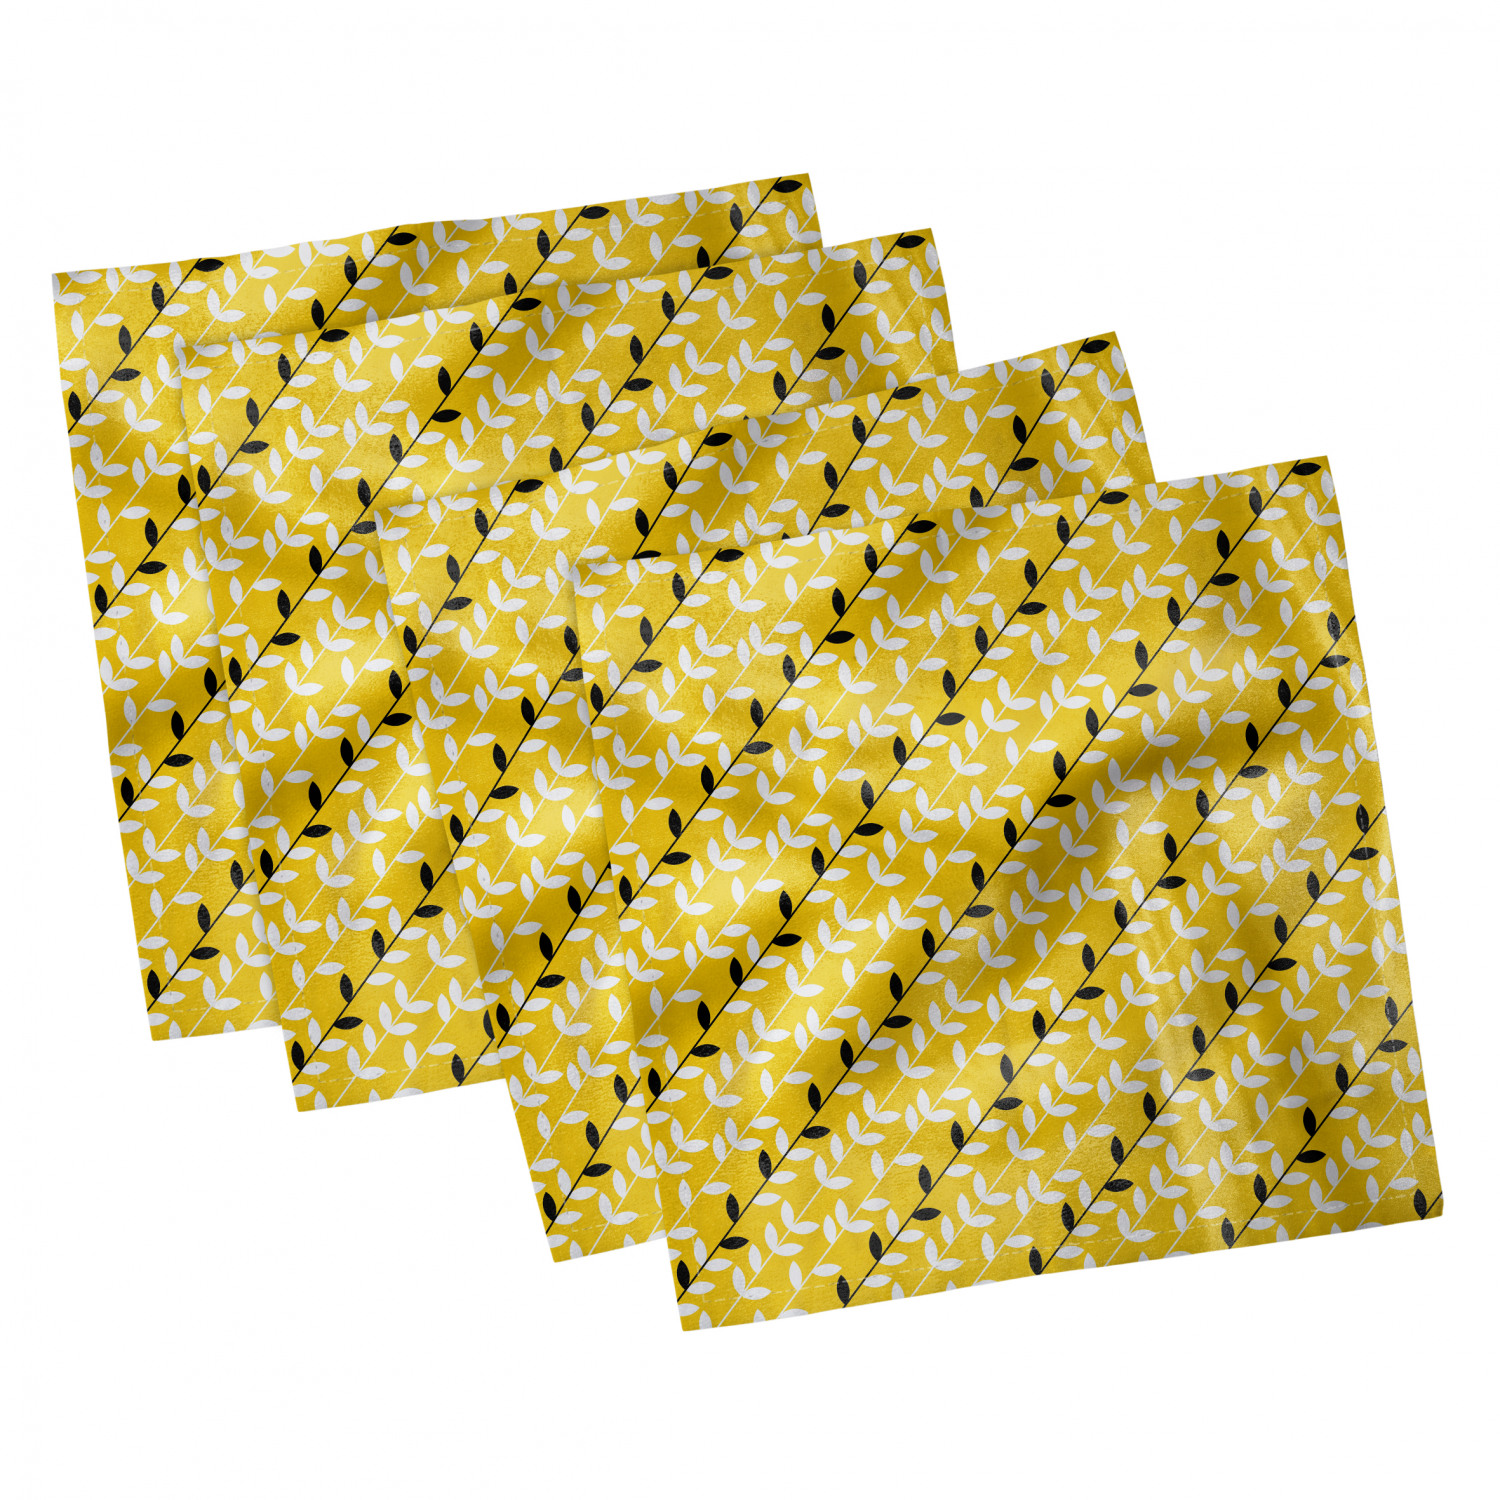 thumbnail 35 - Ambesonne-Leaves-Forest-Decorative-Satin-Napkins-Set-of-4-Party-Dinner-Fabric